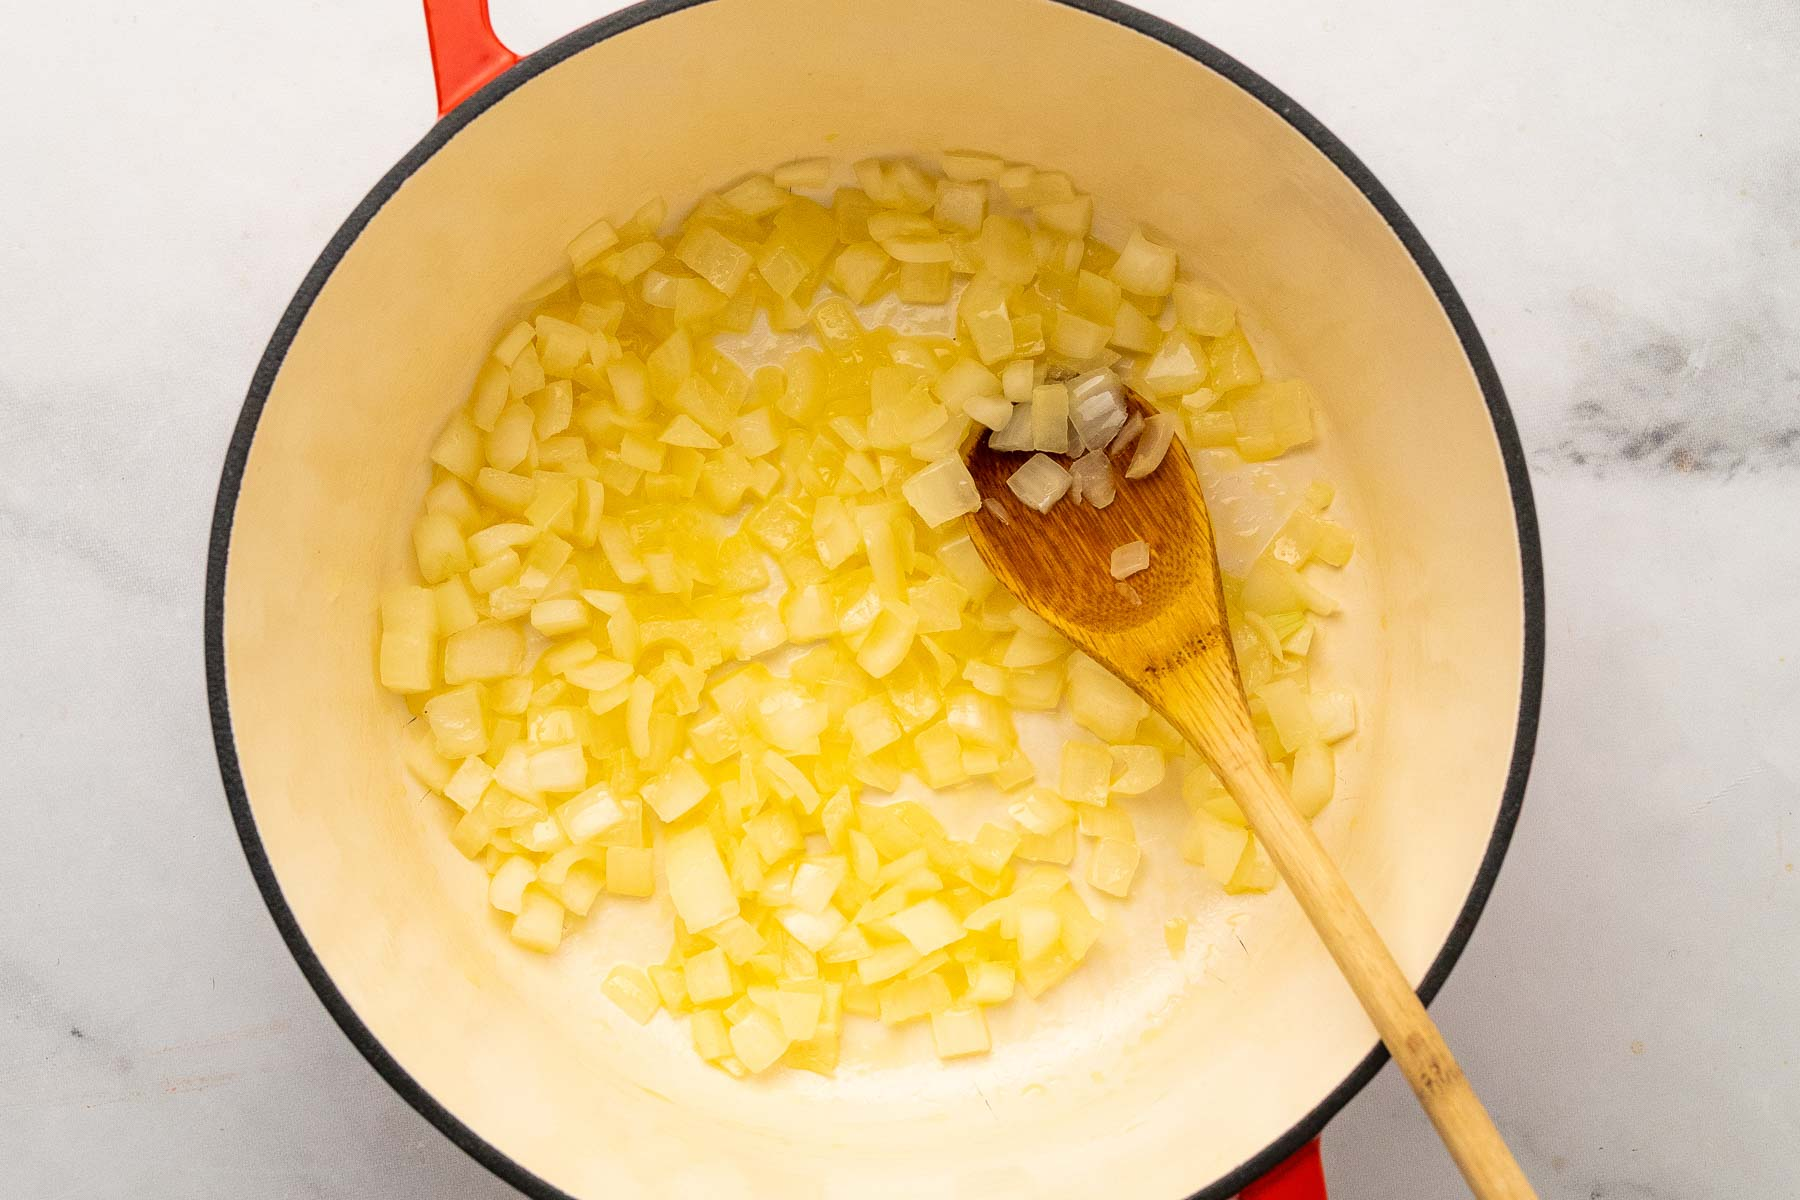 sauteing onion in butter for carrot soup